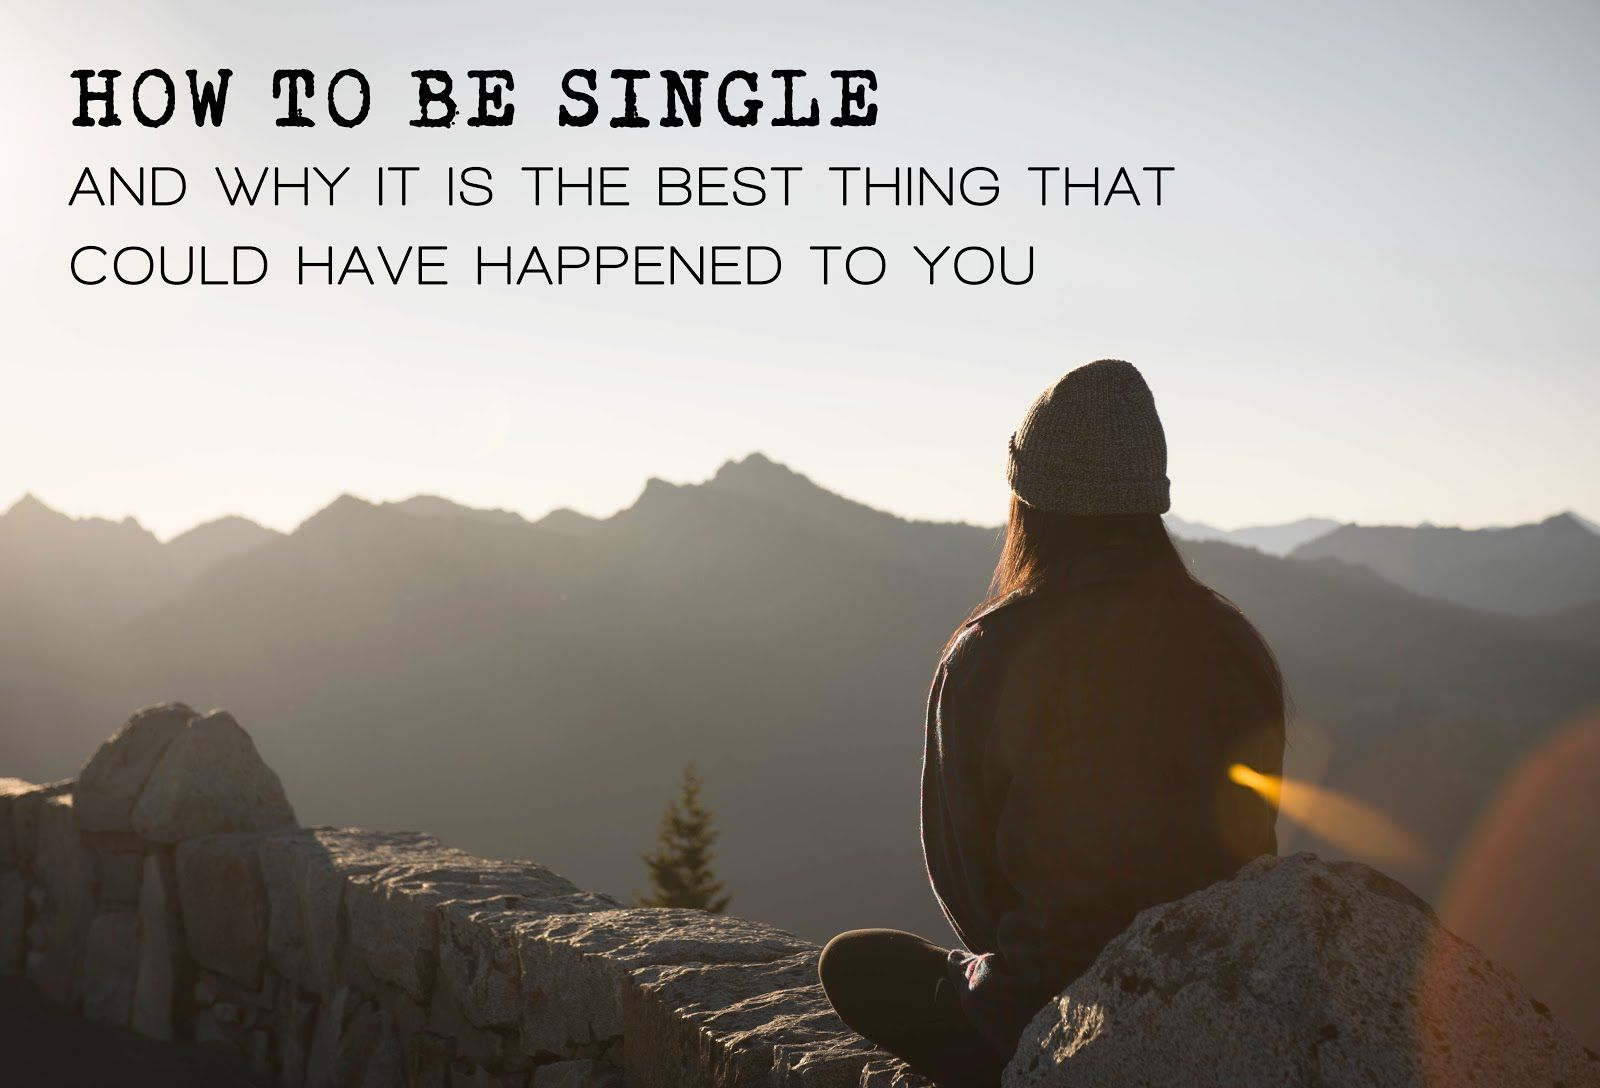 Get your daily dose of happiness how to be single and why it is the get your daily dose of happiness how to be single and why it is the best ccuart Gallery